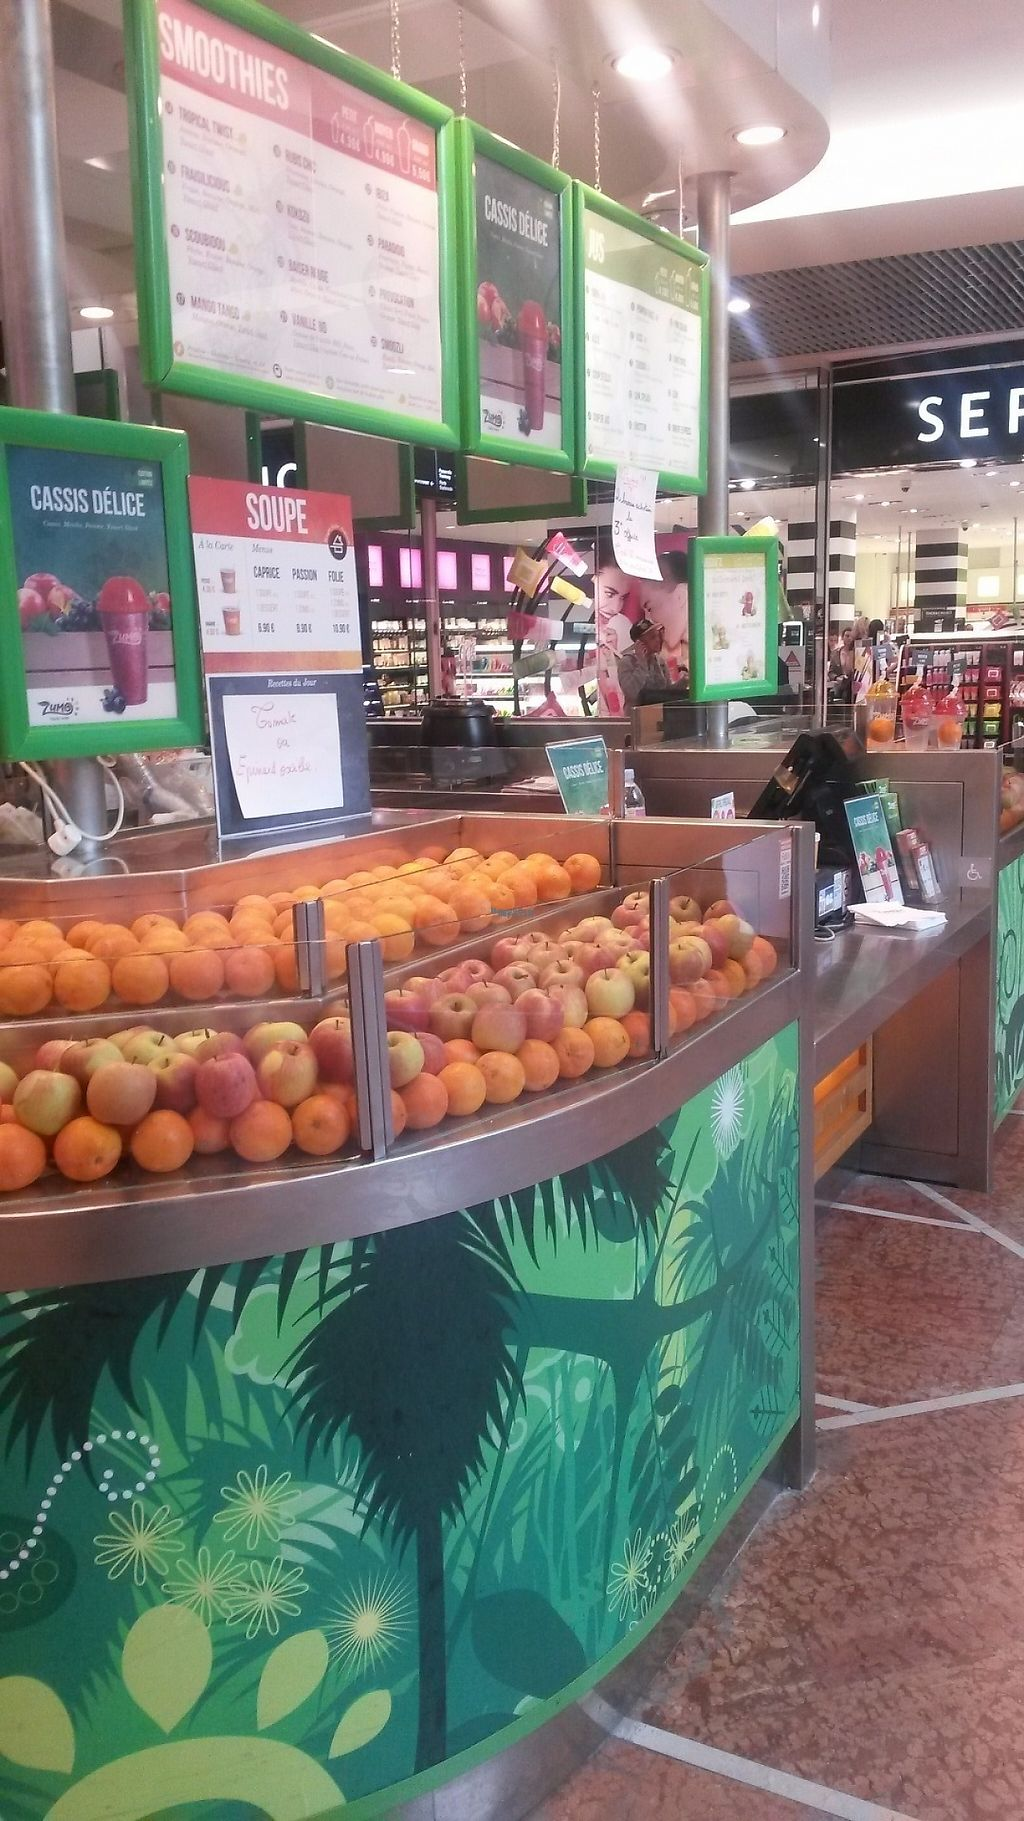 "Photo of Zumo Smoothies Bar  by <a href=""/members/profile/PascalB"">PascalB</a> <br/>One side full of oranges <br/> March 23, 2017  - <a href='/contact/abuse/image/32827/240054'>Report</a>"